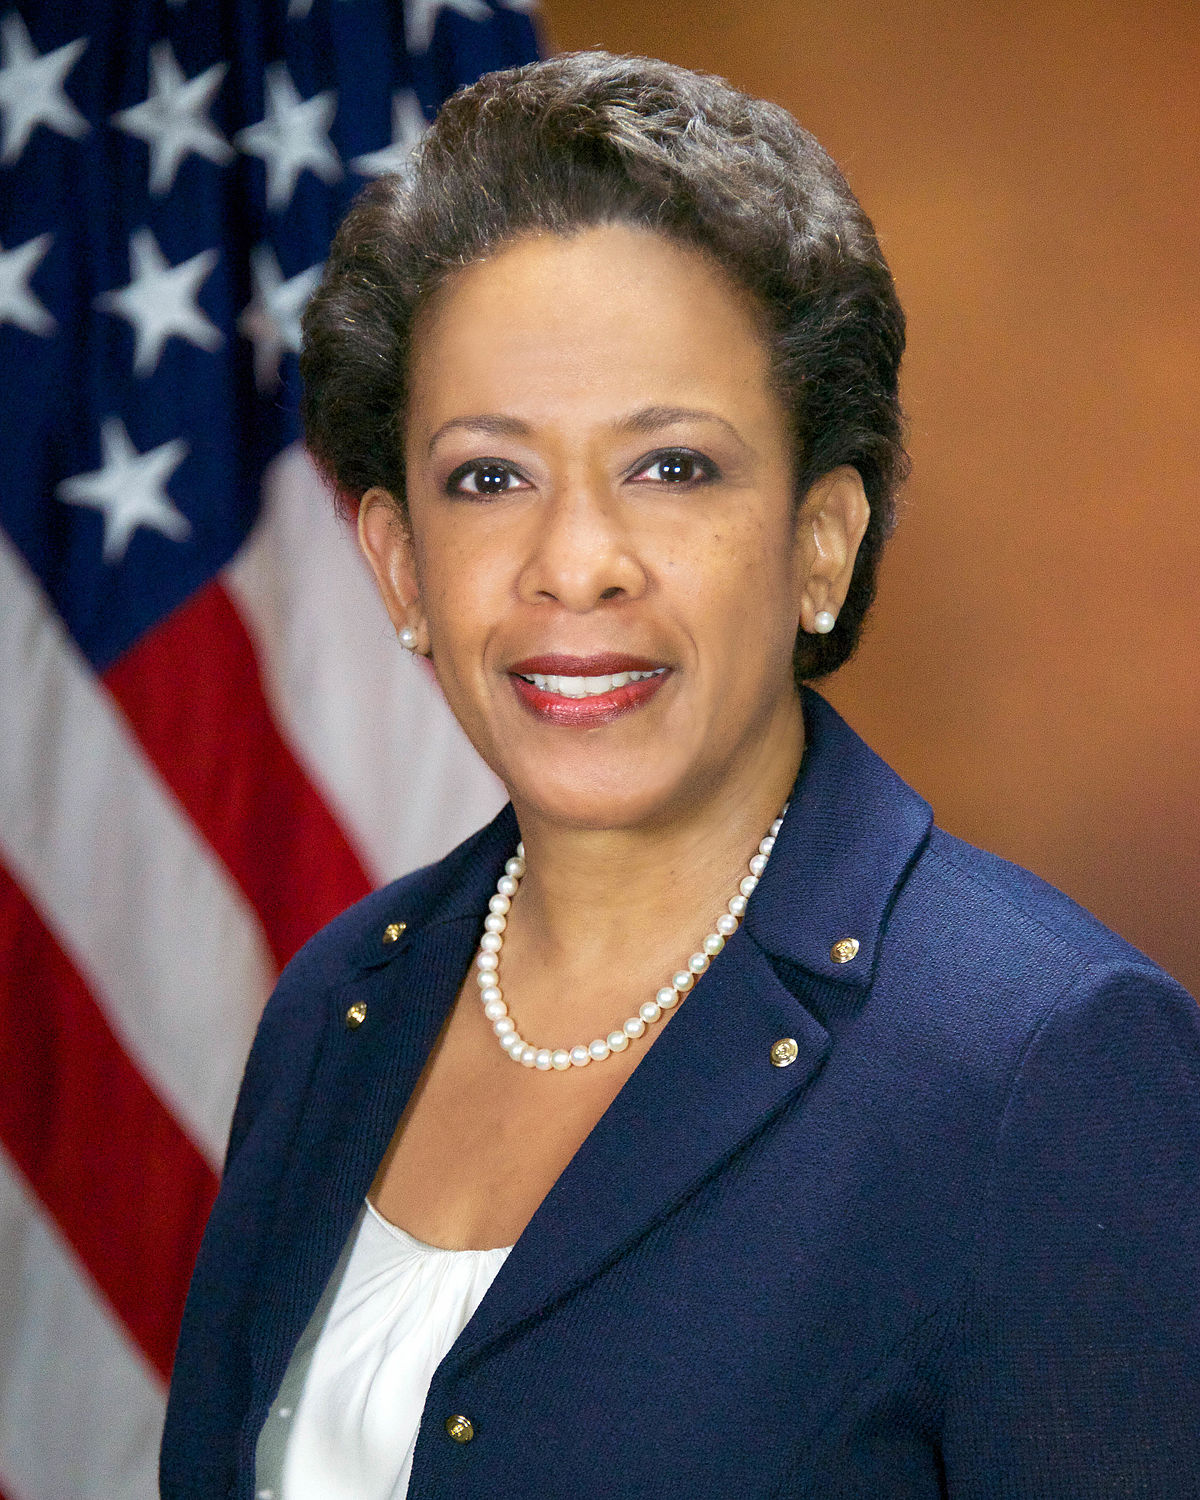 Loretta Lynch's Headshot